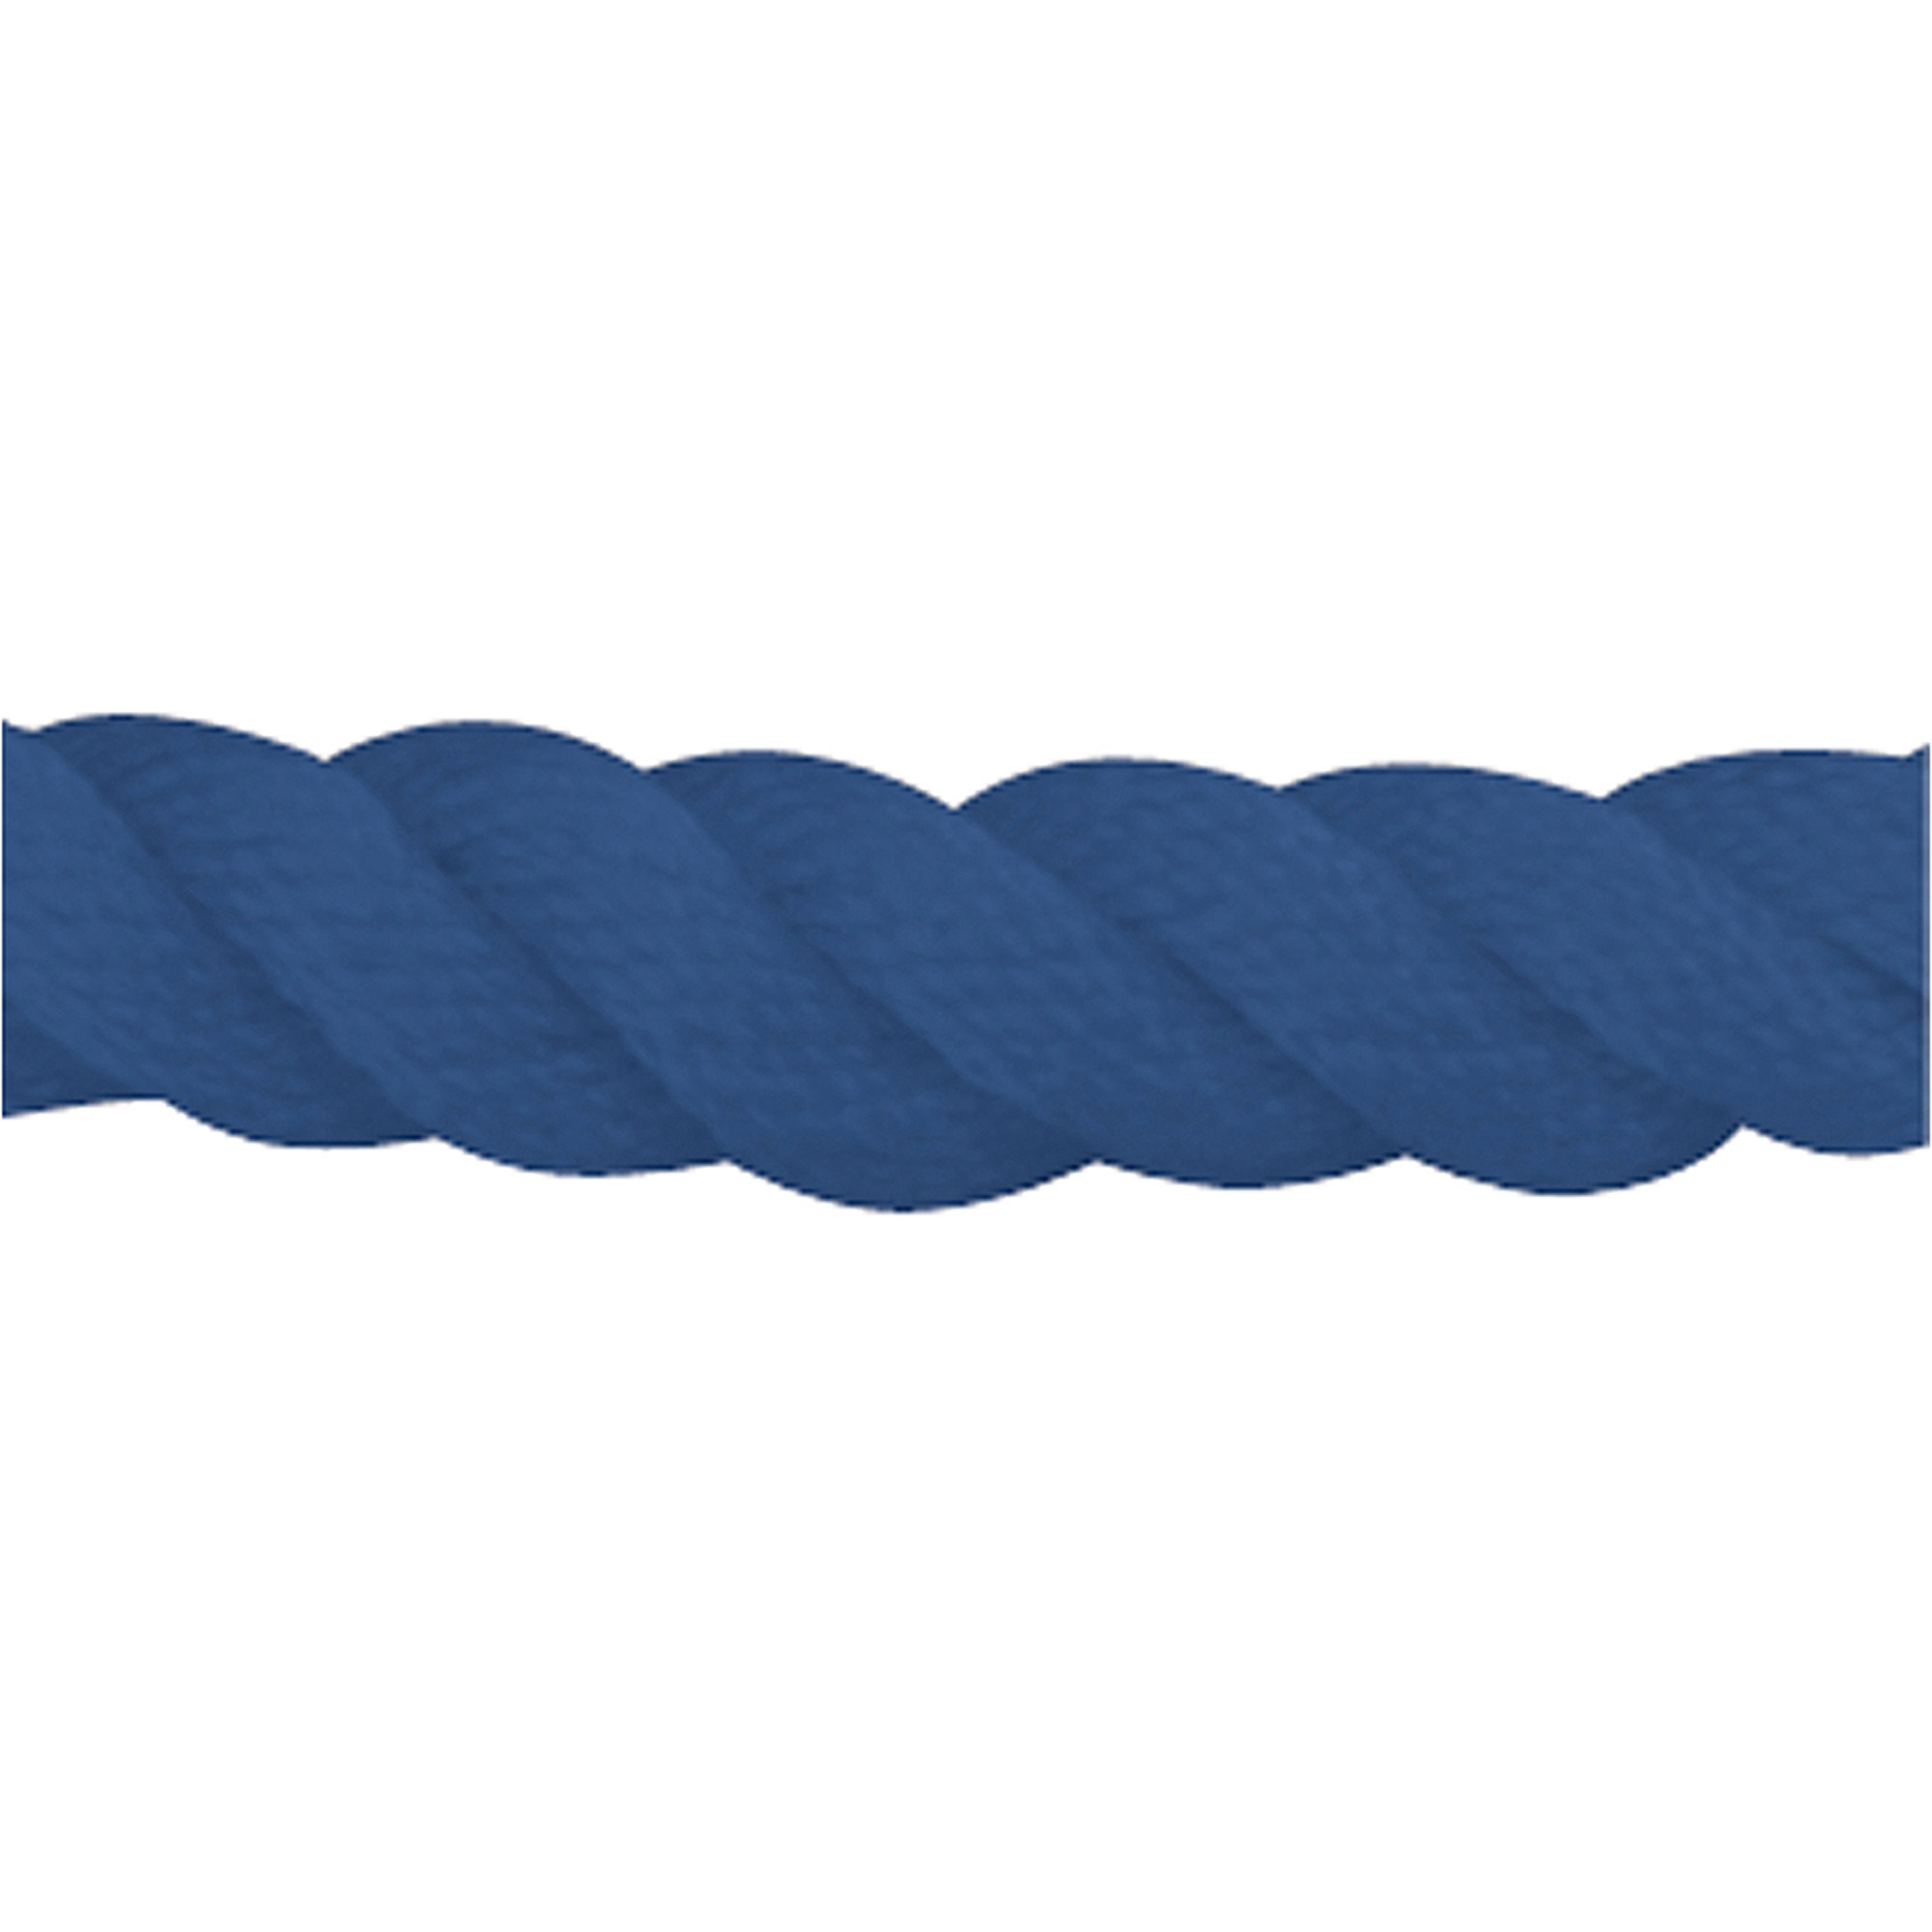 "Sea Dog Dock Line, Twisted Nylon, 3 8"" x 25', Blue by Sea-Dog Line"